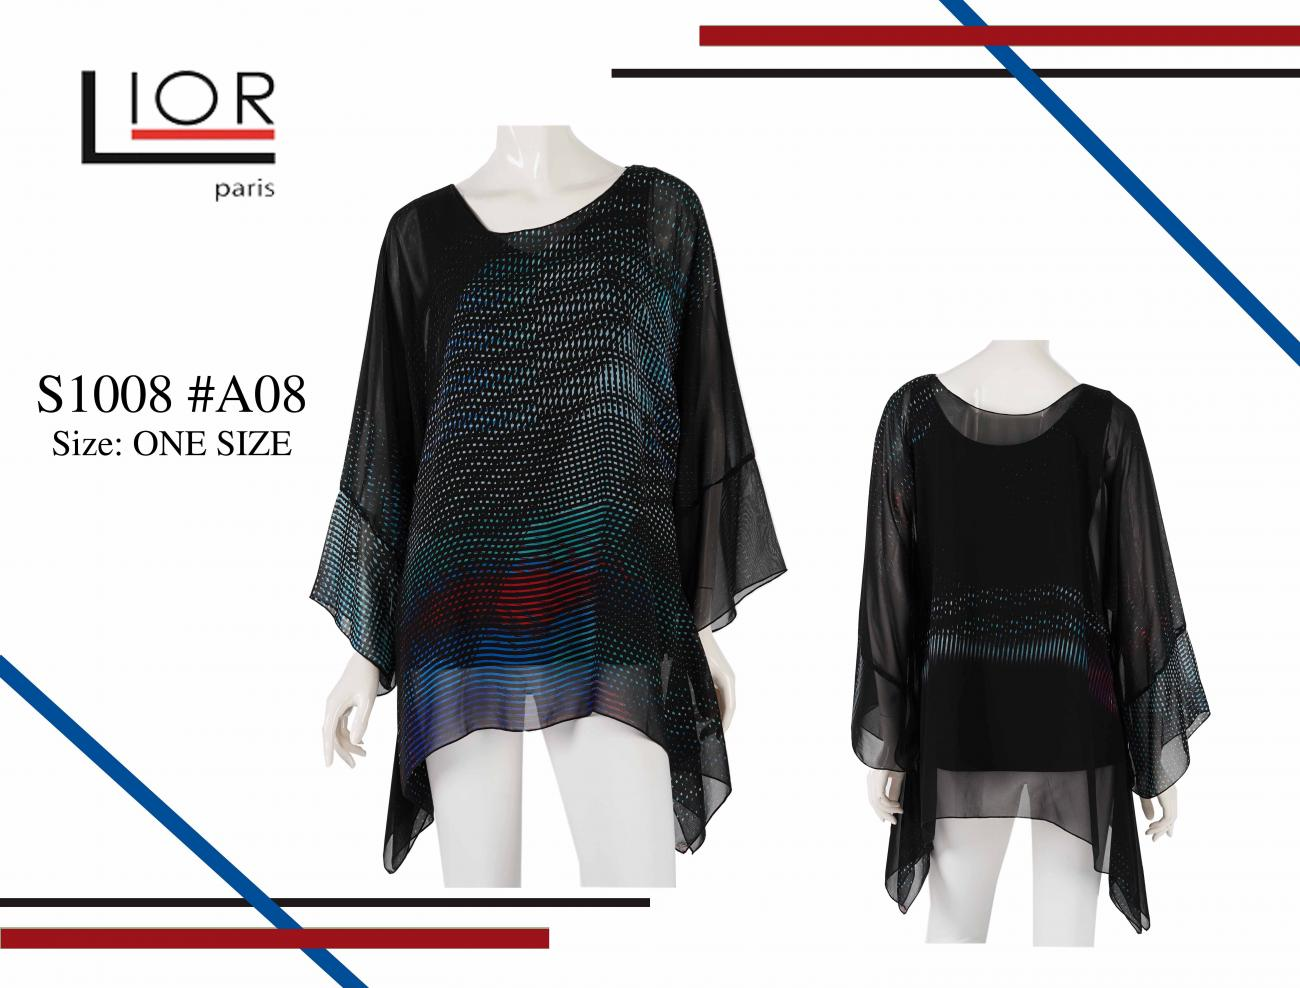 Sheer Chiffon one size top S1008 - A08 - TheLittleShopOnline.com